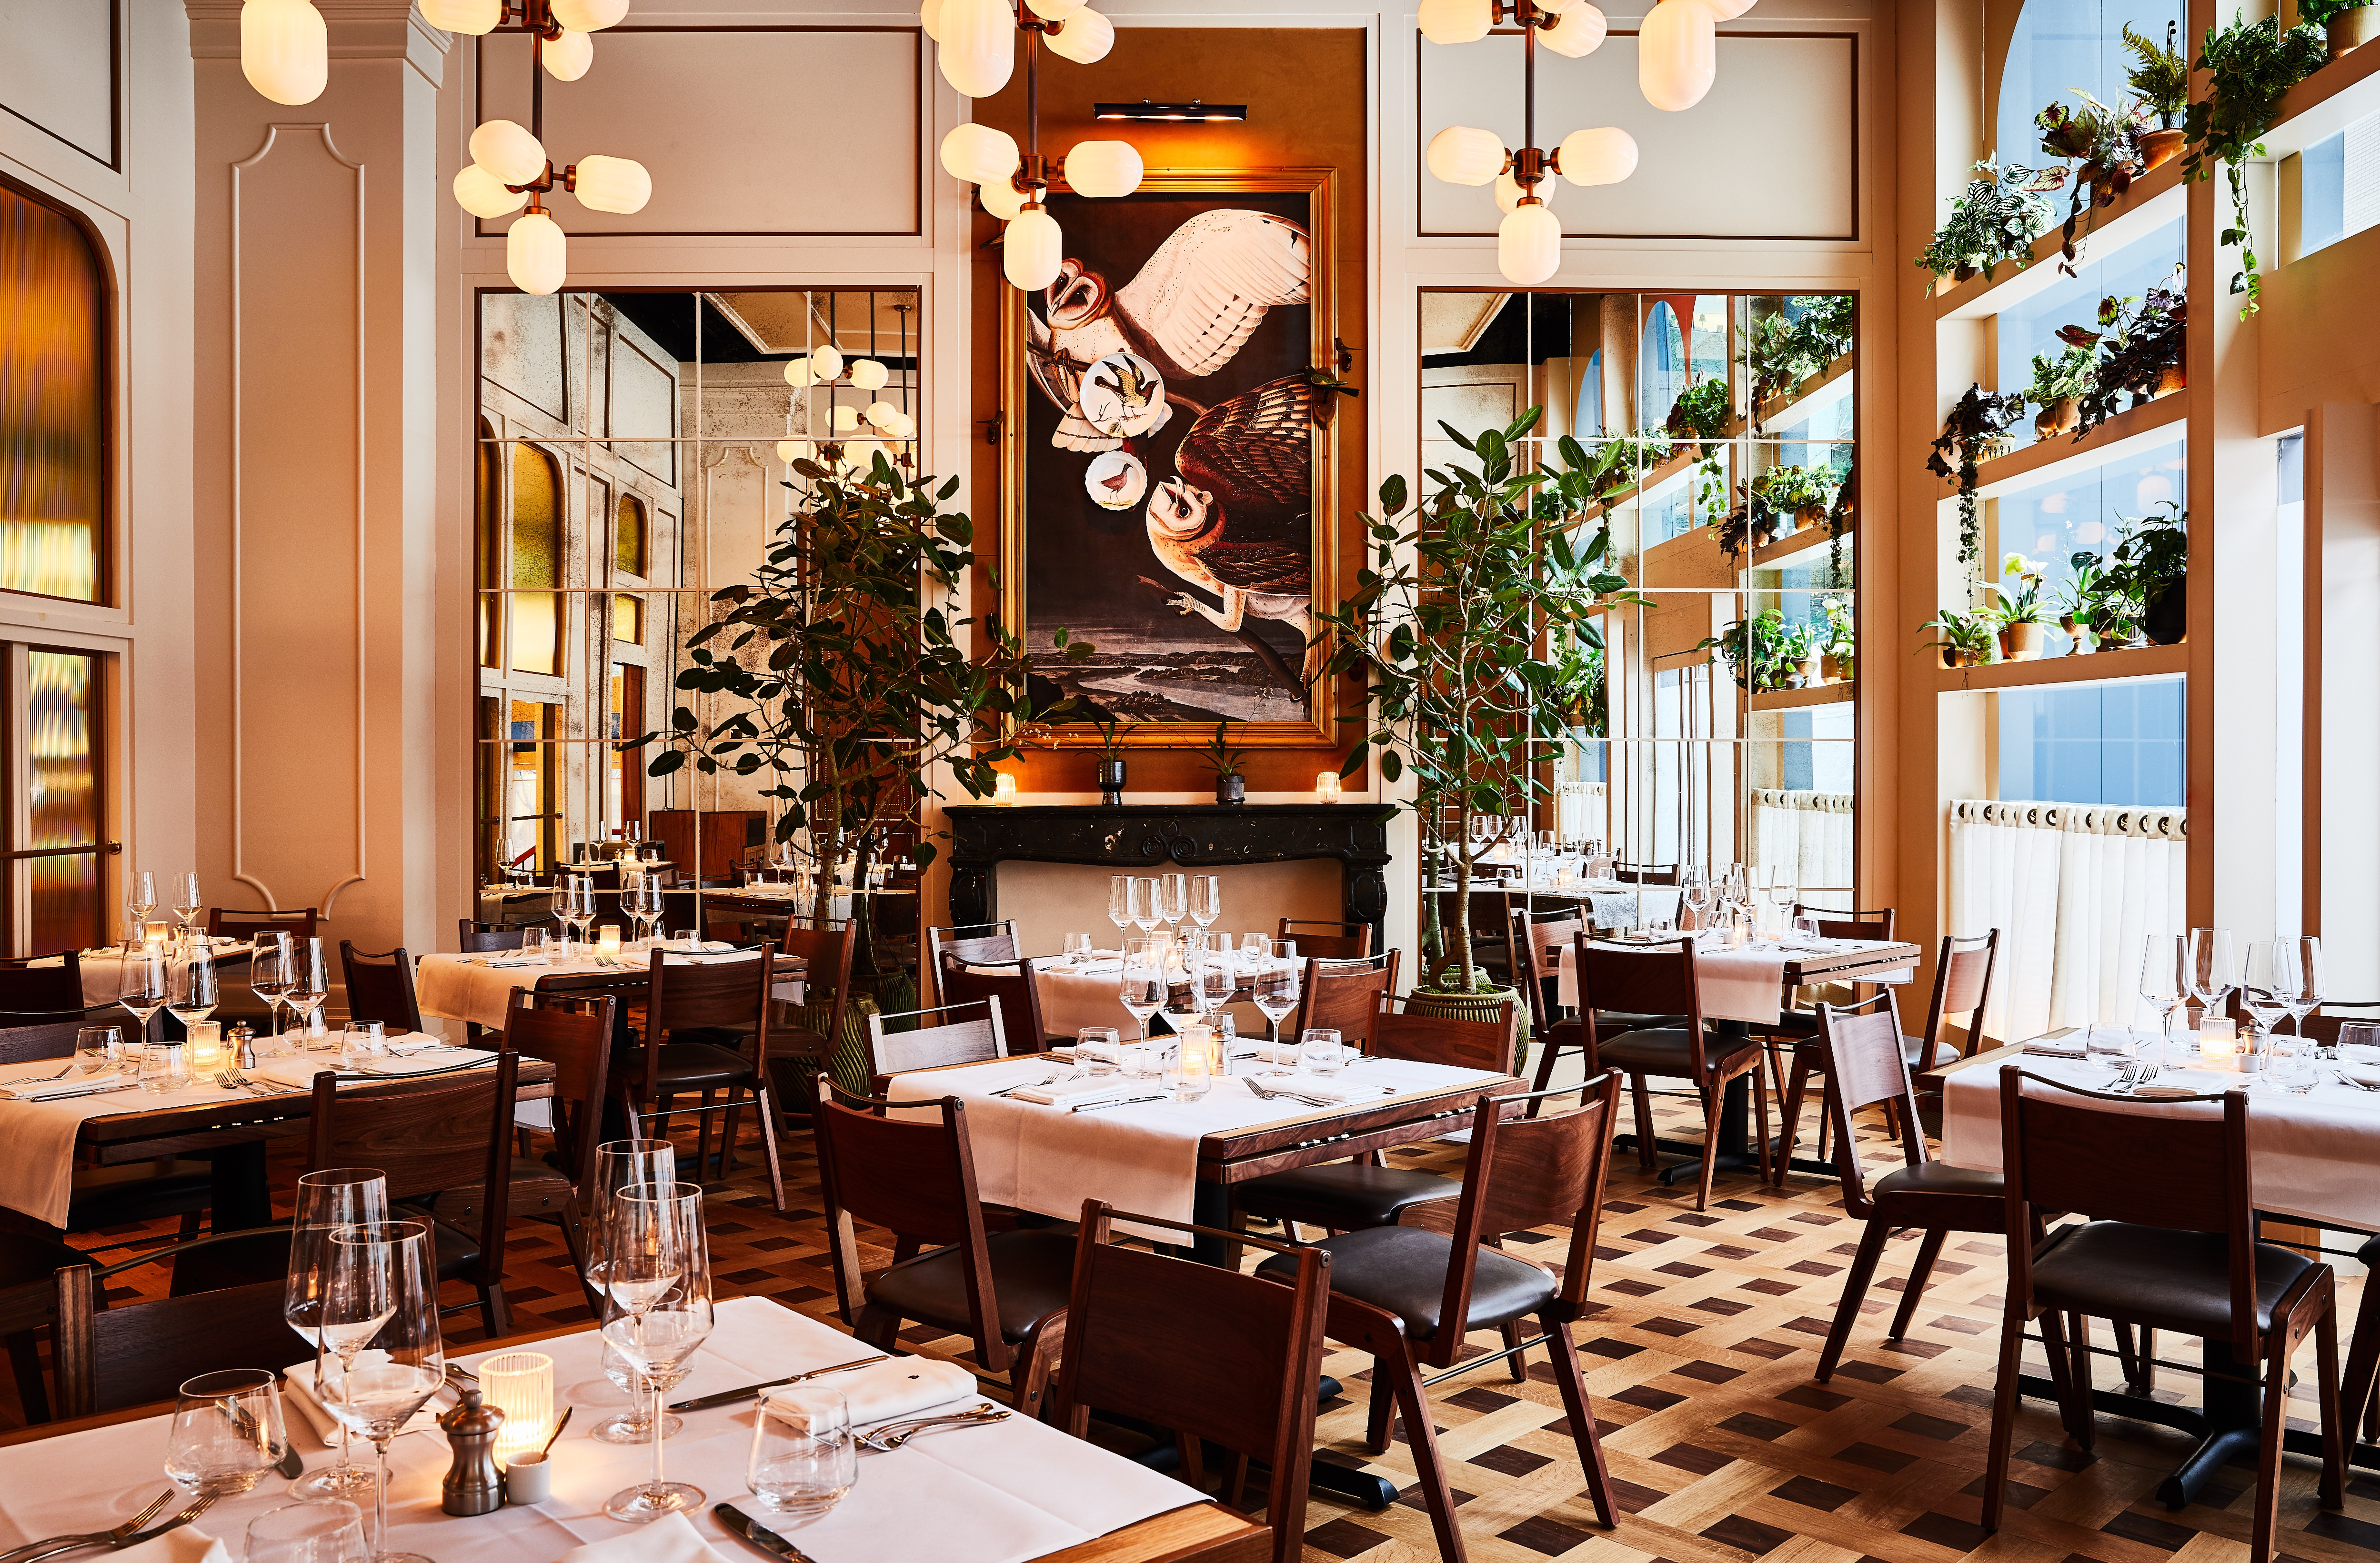 The Nyc Hit List The Best New Restaurants In Nyc New York The Infatuation